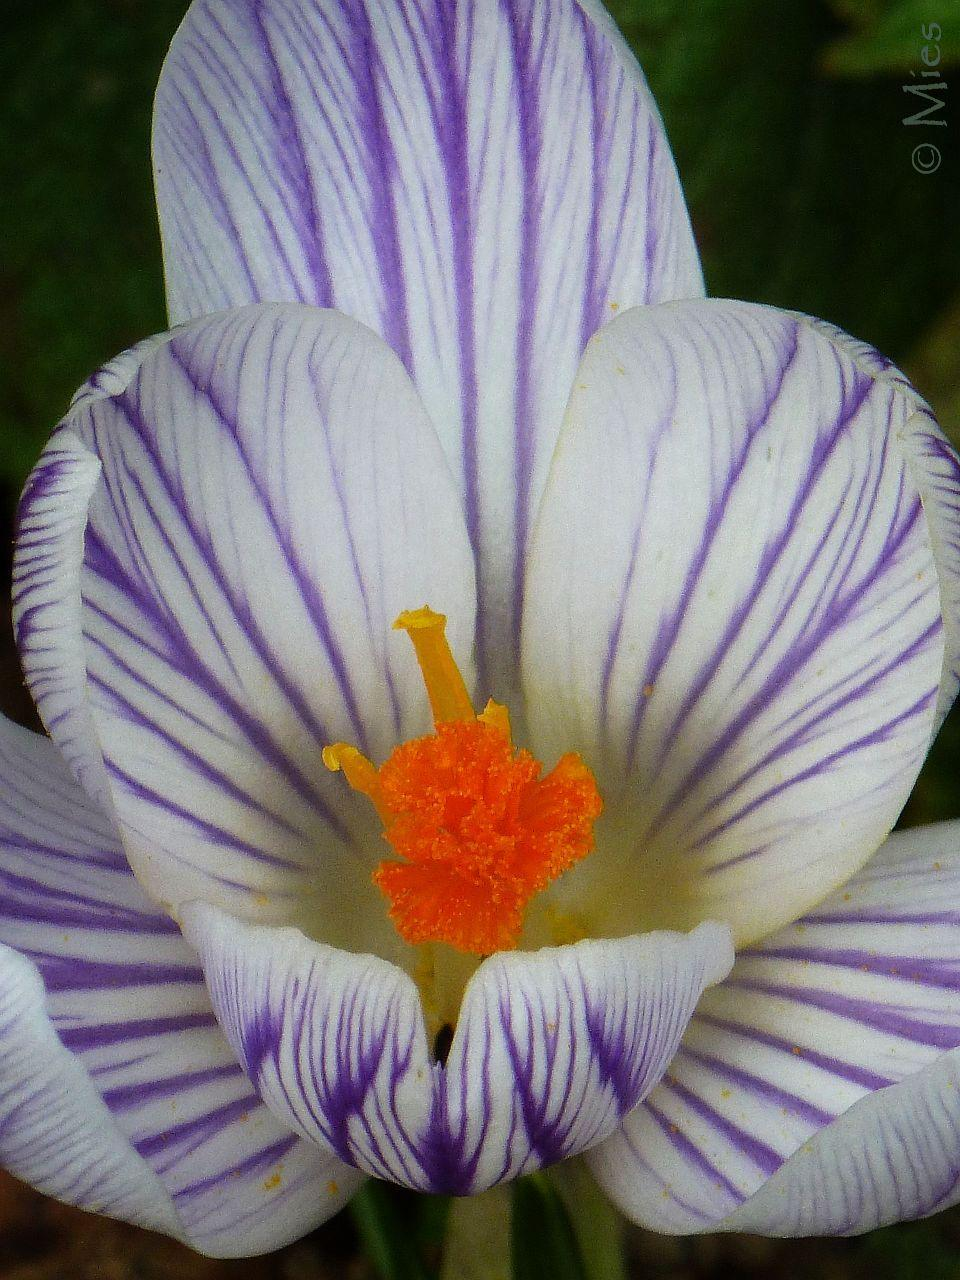 Deep focus on a crocus